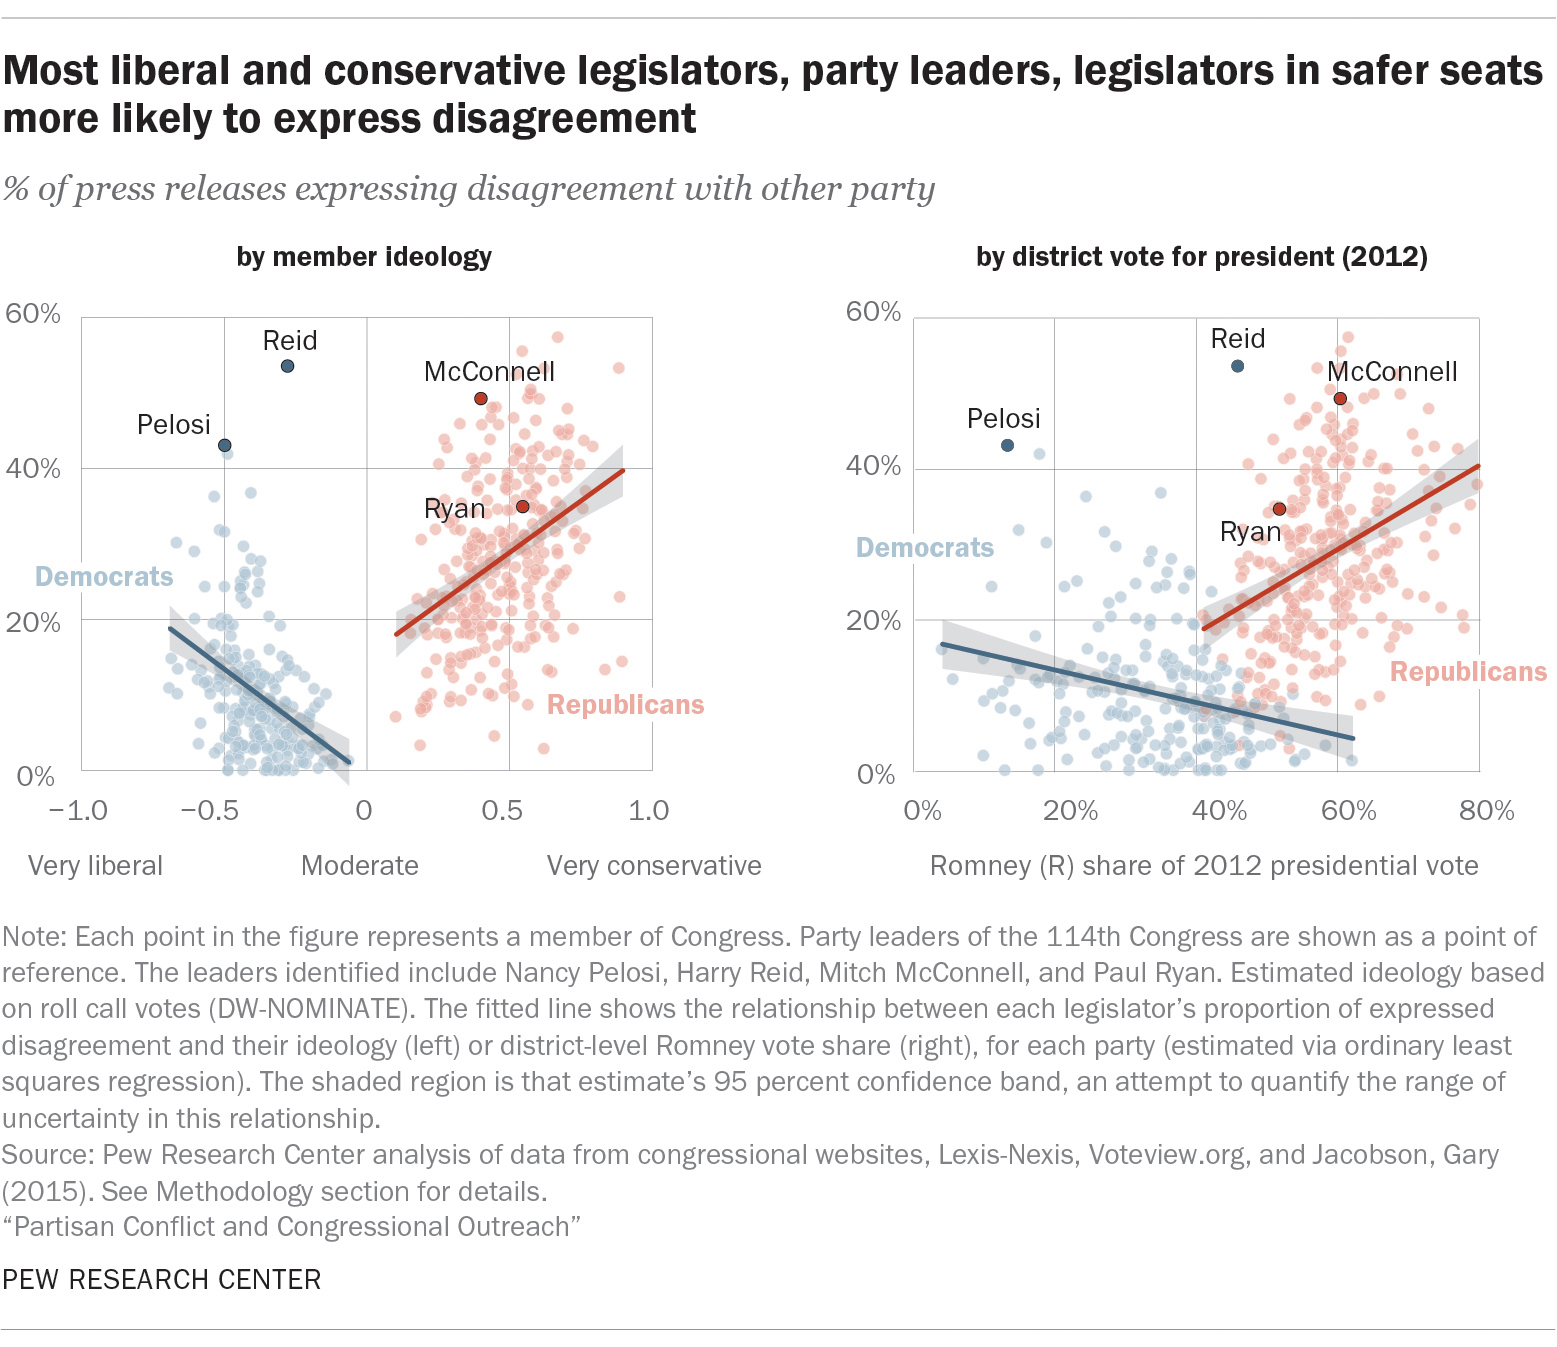 Most liberal and conservative legislators, party leaders, legislators in safer seats more likely to express disagreement